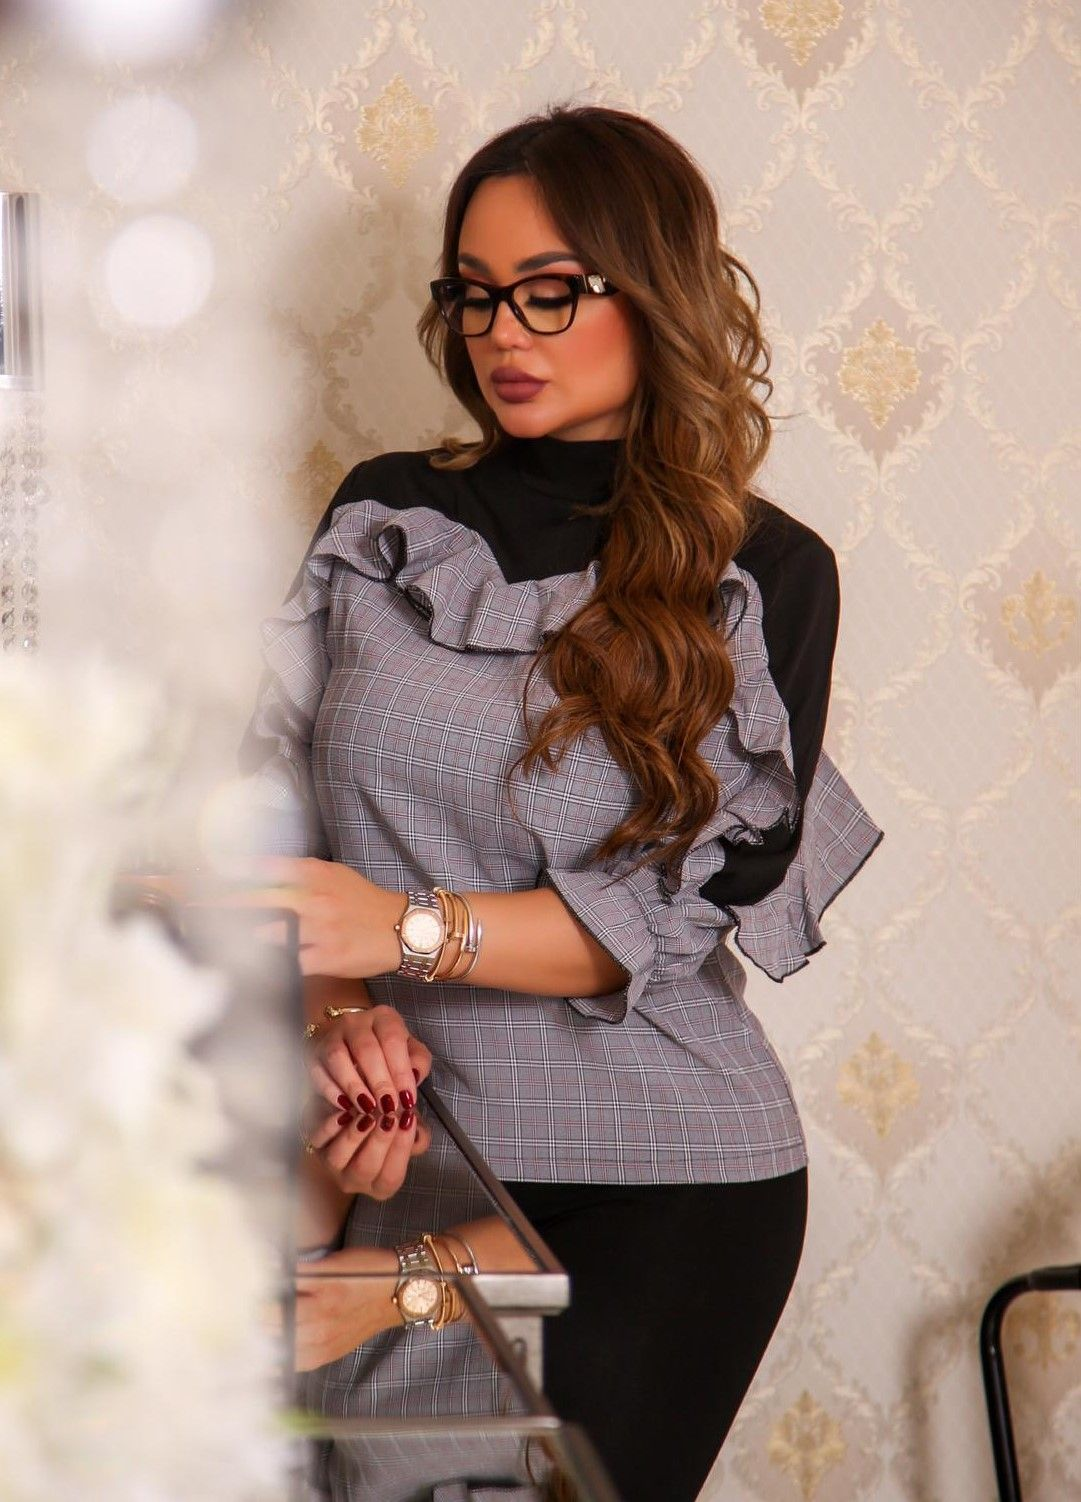 cabf690d76 SHEIN Multicolor Ruffle Trim Plaid Mock Top Elegant Stand Collar Long  Sleeve Workwear Blouse